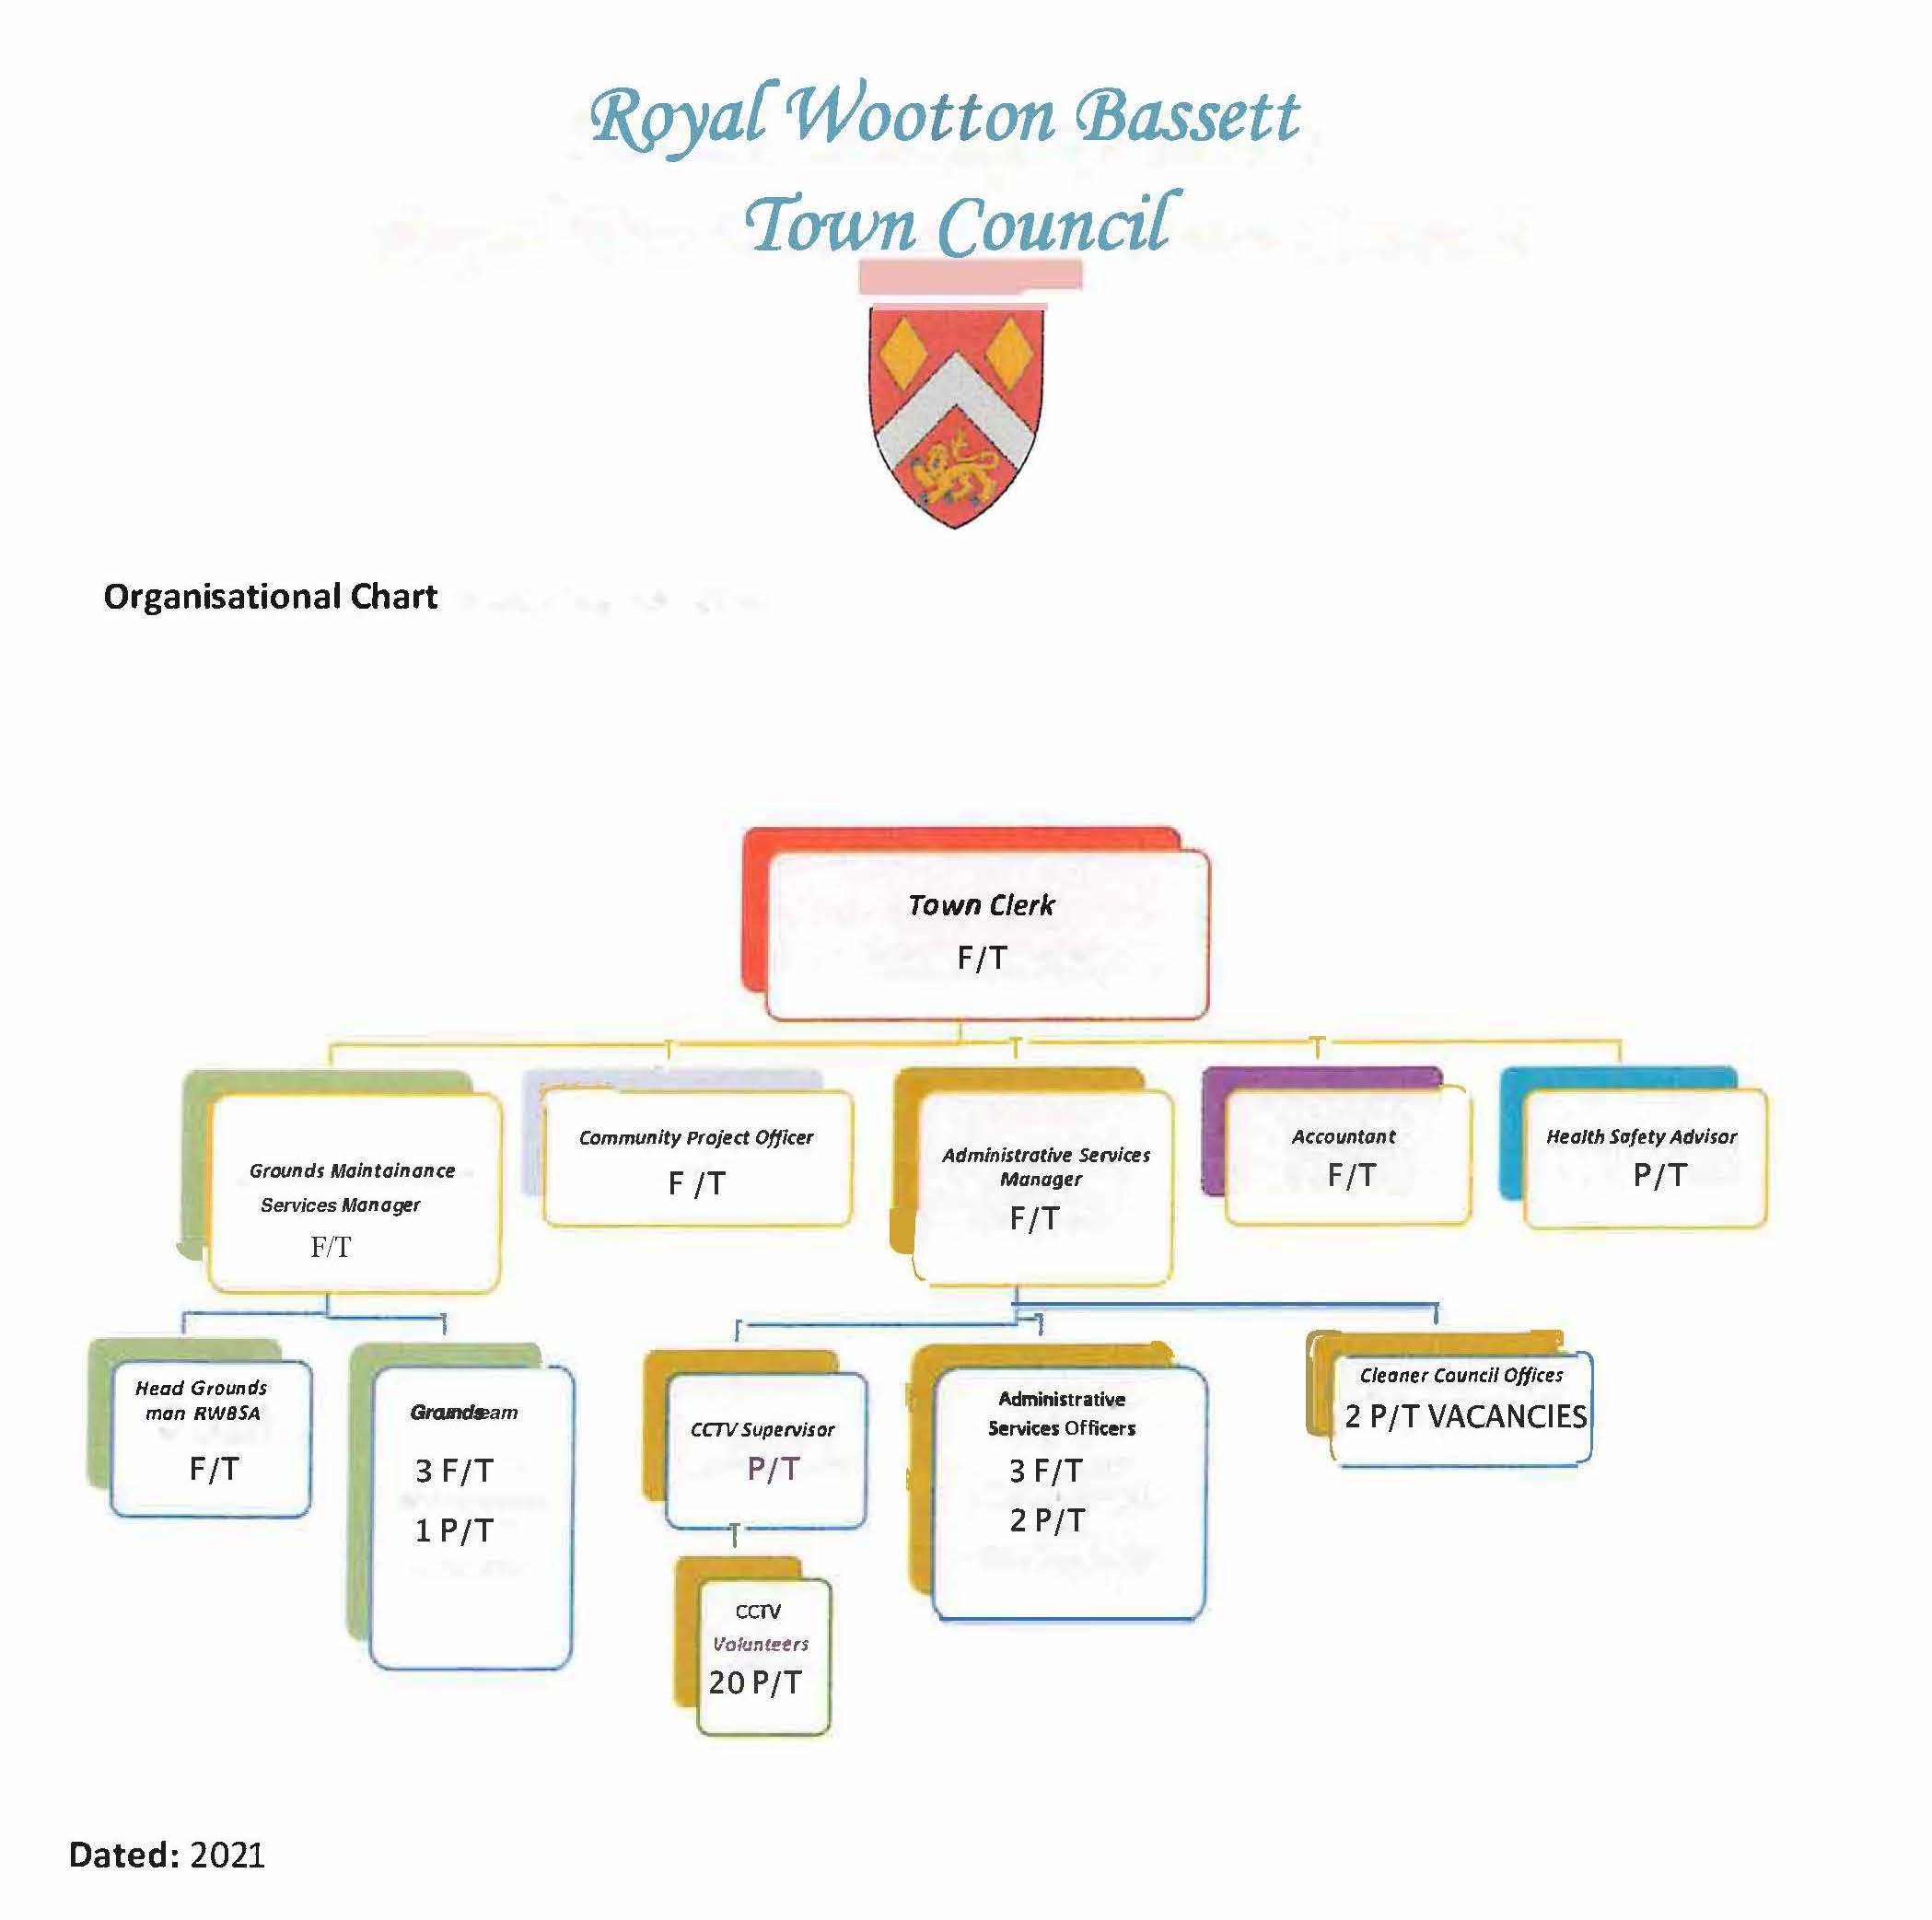 Council Officers Organisational Chart